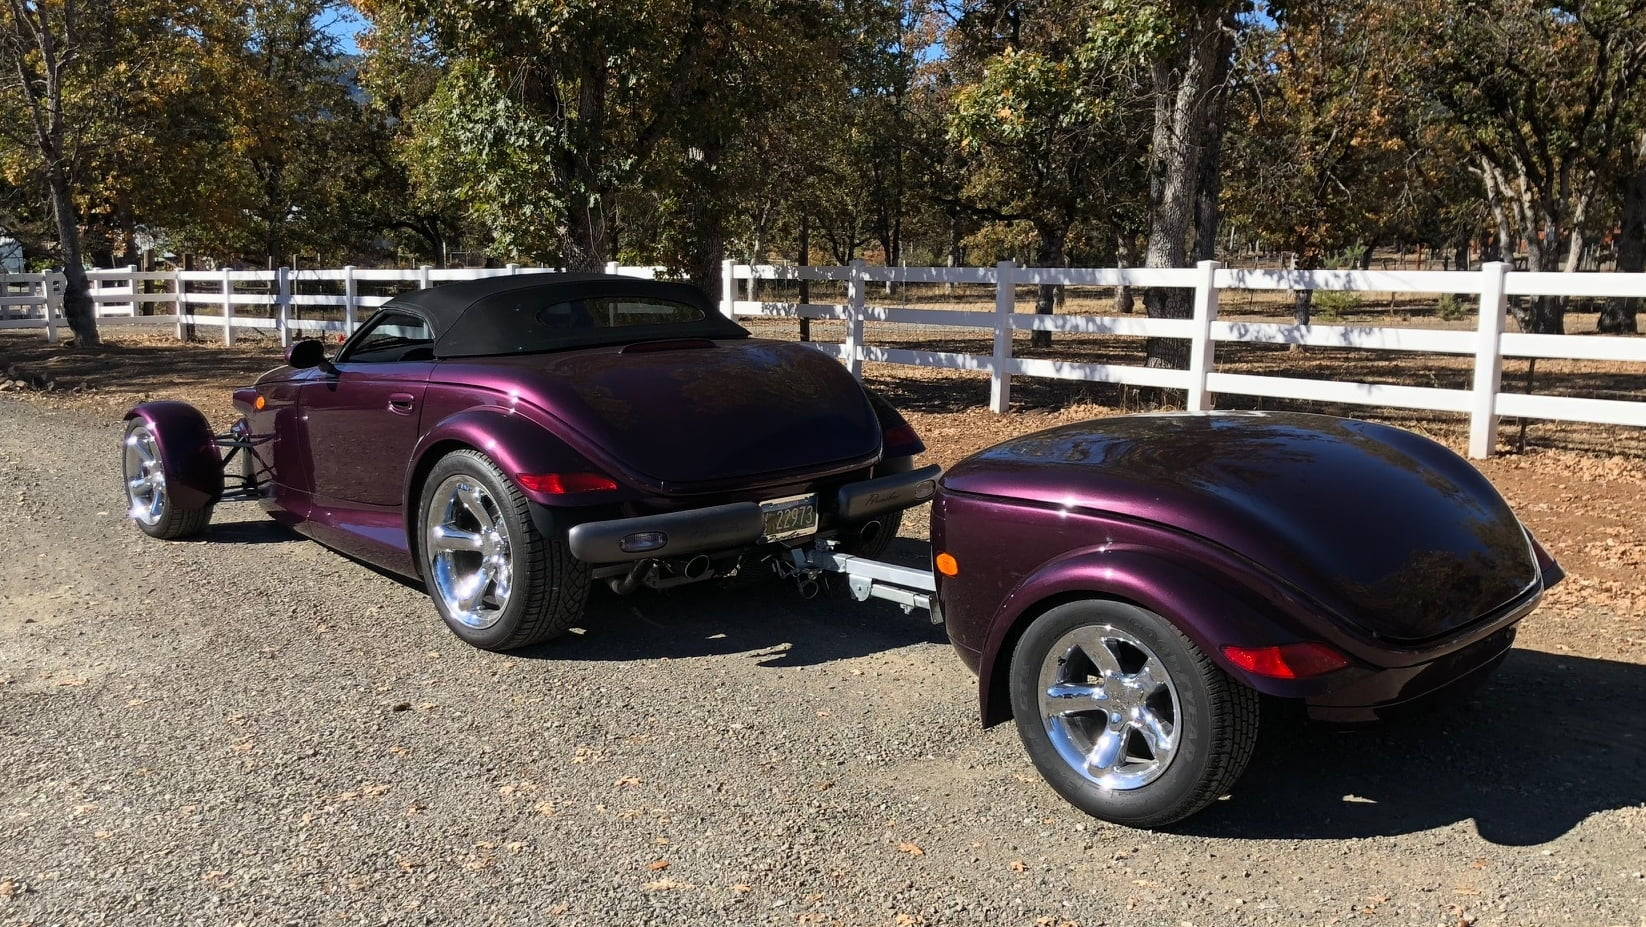 1999 Plymouth Prowler rear with trailer